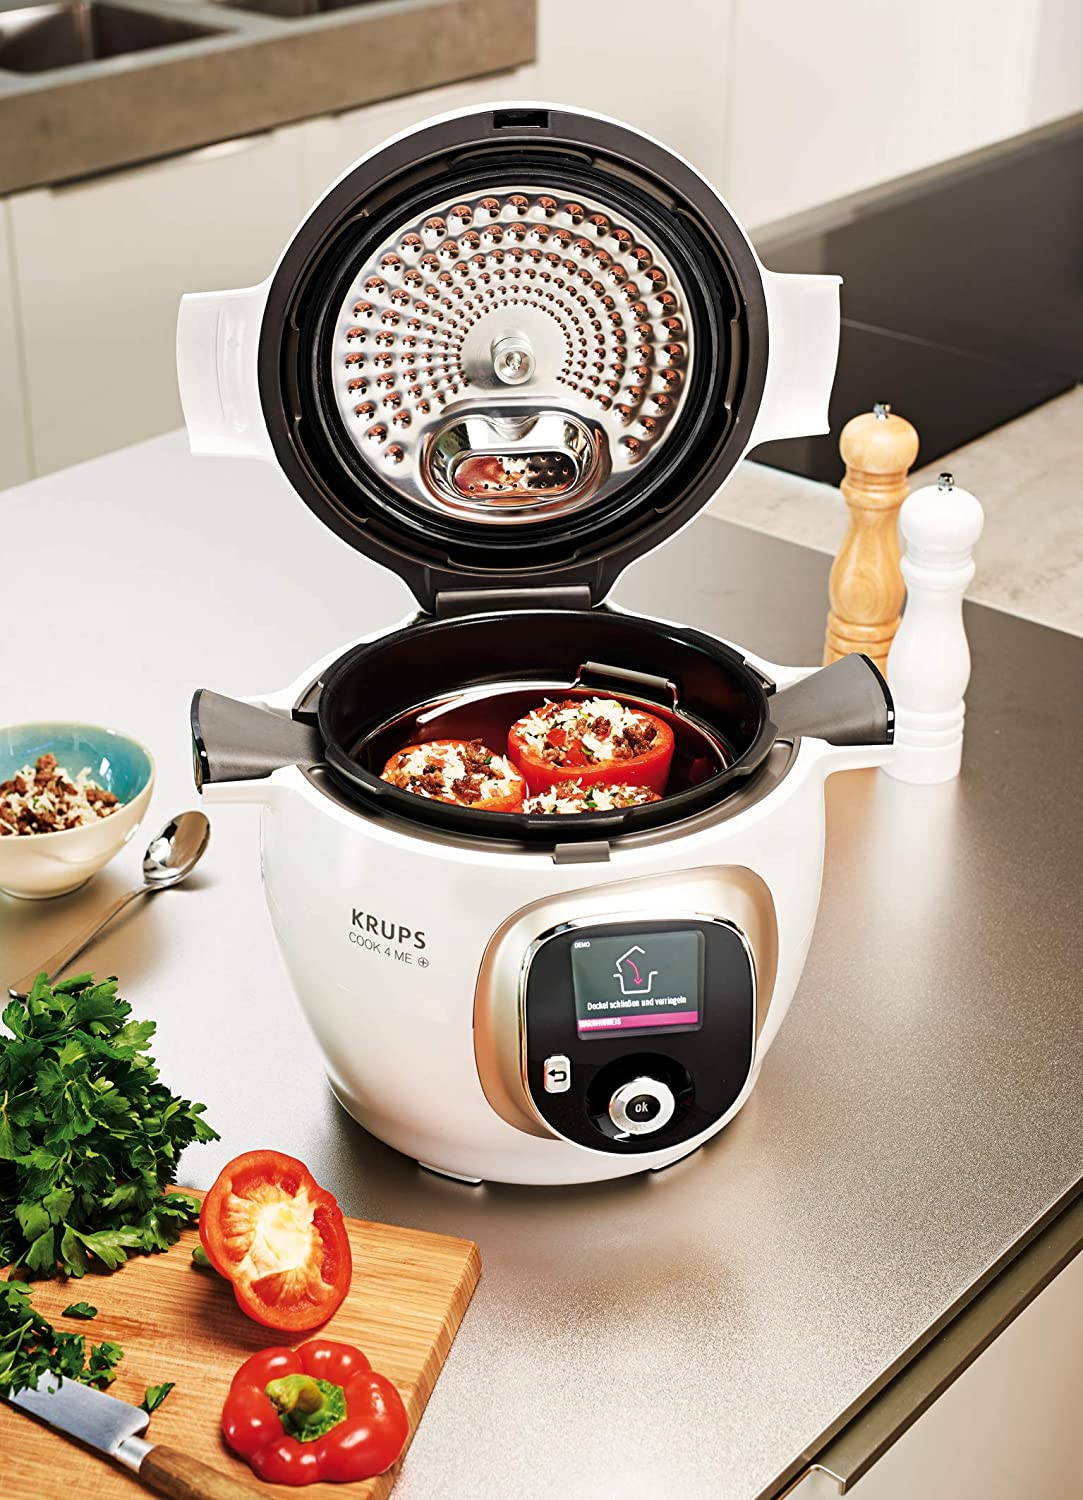 Krups cz7101 Multi eléctrica cook4me Plus, 4 L, 1200 W, color blanco/gris: Amazon.es: Hogar